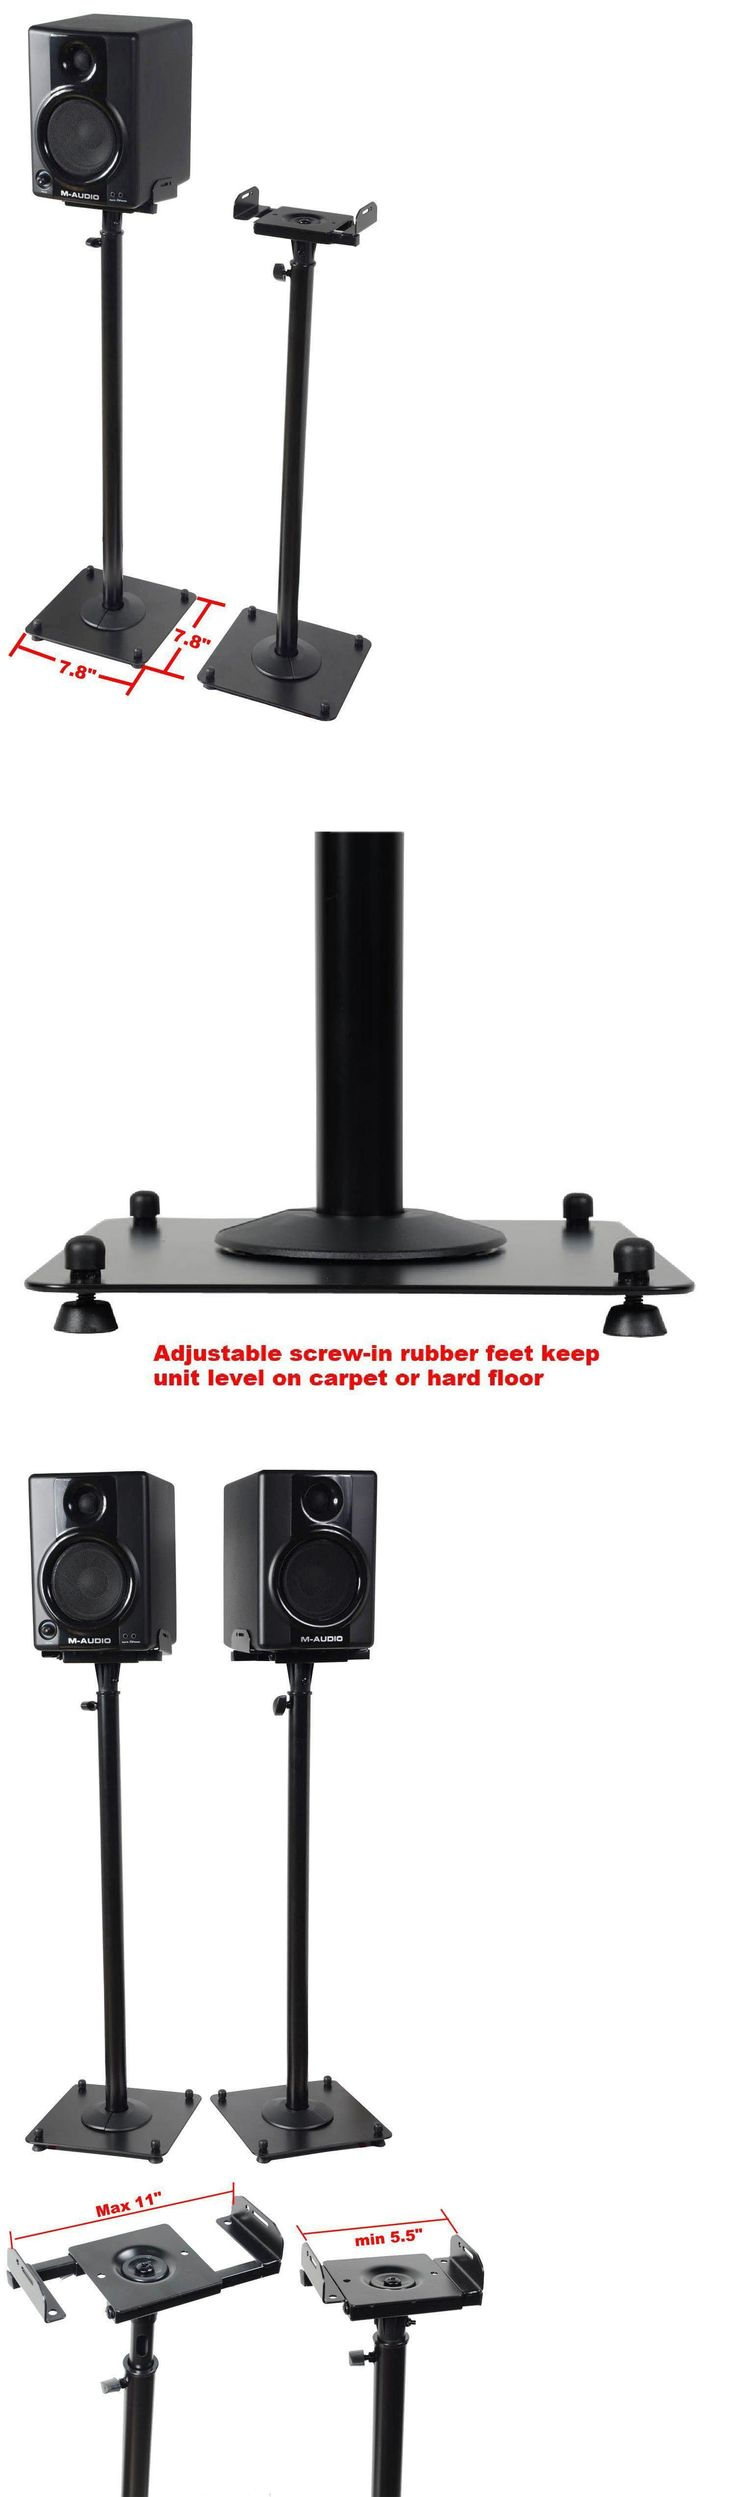 Speaker Mounts and Stands: Speaker Stands Adjustable 2Pc Height Satellite Mount Heavy Duty -> BUY IT NOW ONLY: $45.16 on eBay!